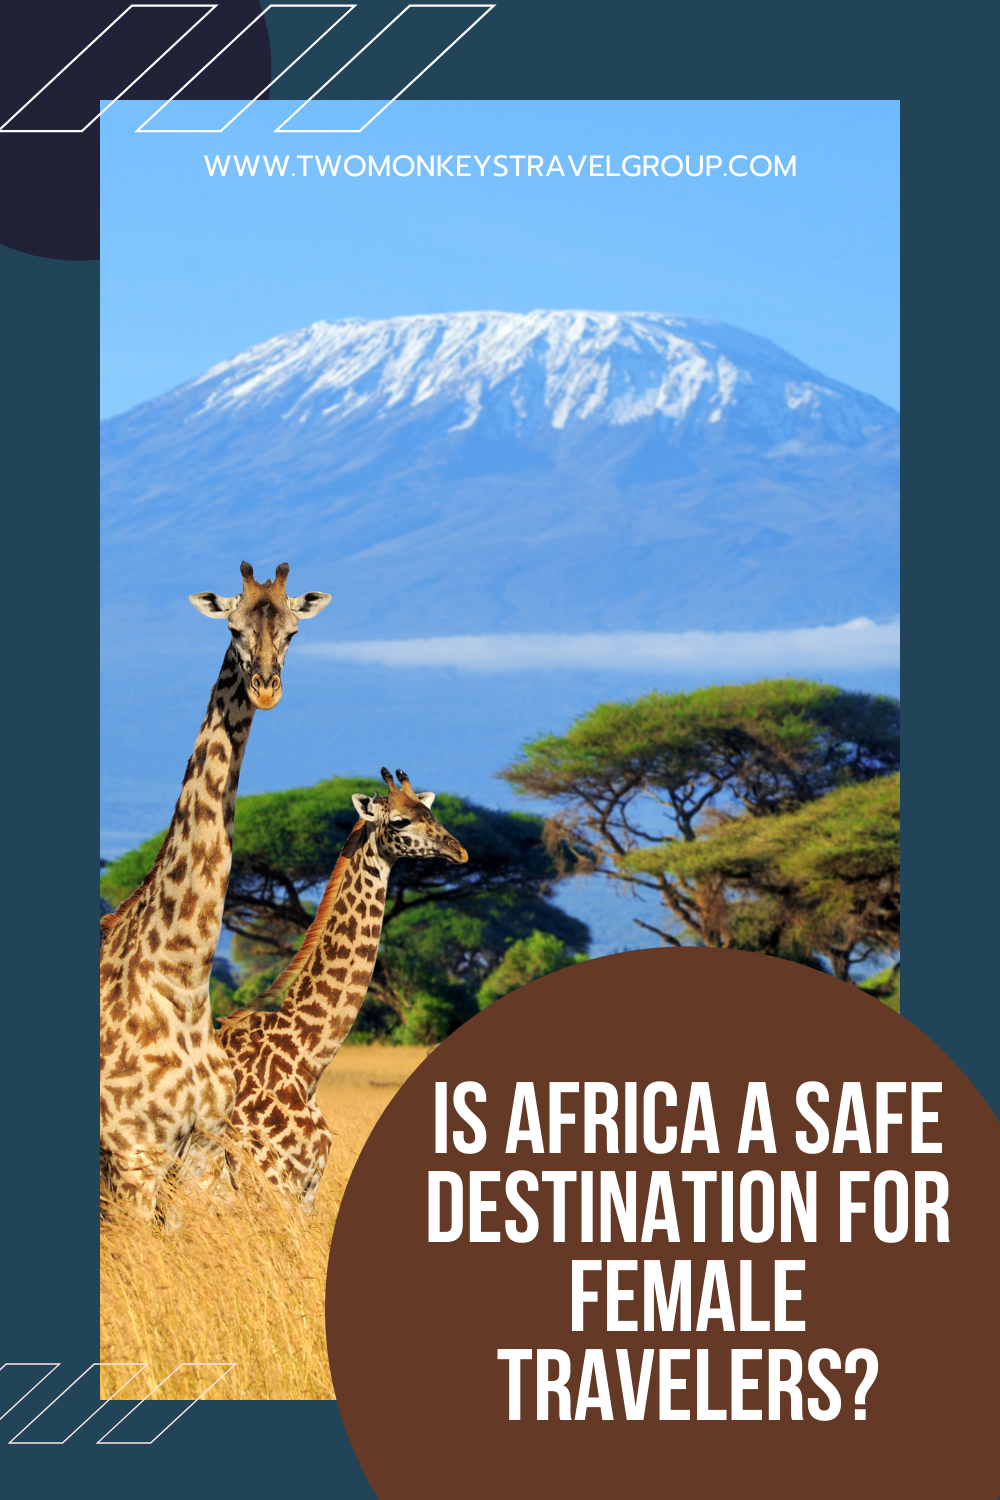 Is Africa a Safe Destination for Female Travelers